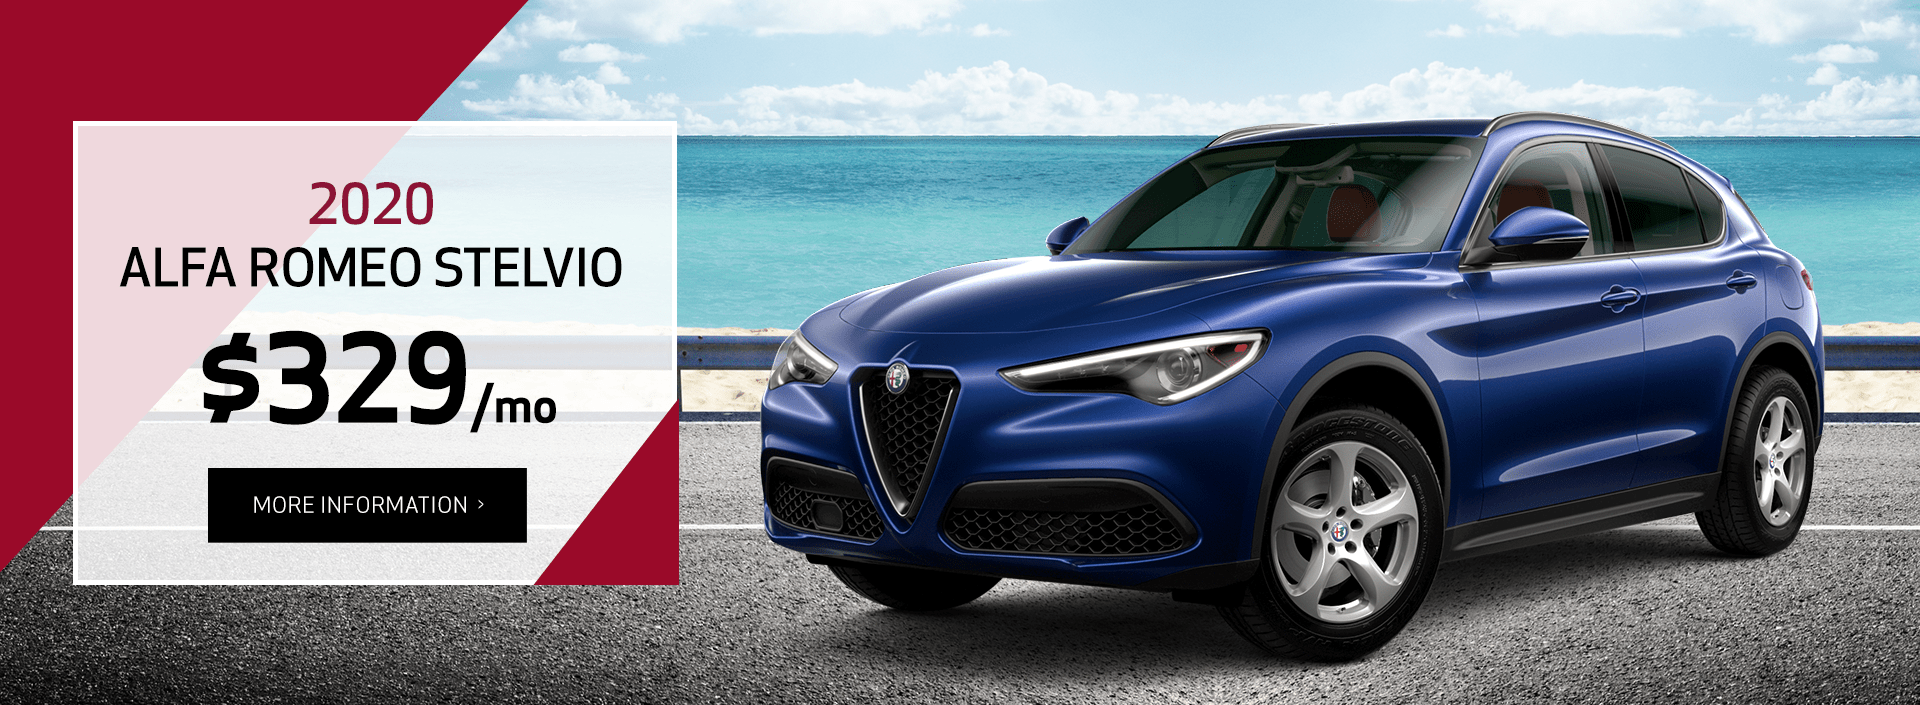 Alfa Romeo Lease in Fort Lauderdale | Alfa Romeo Lease near Weston, FL